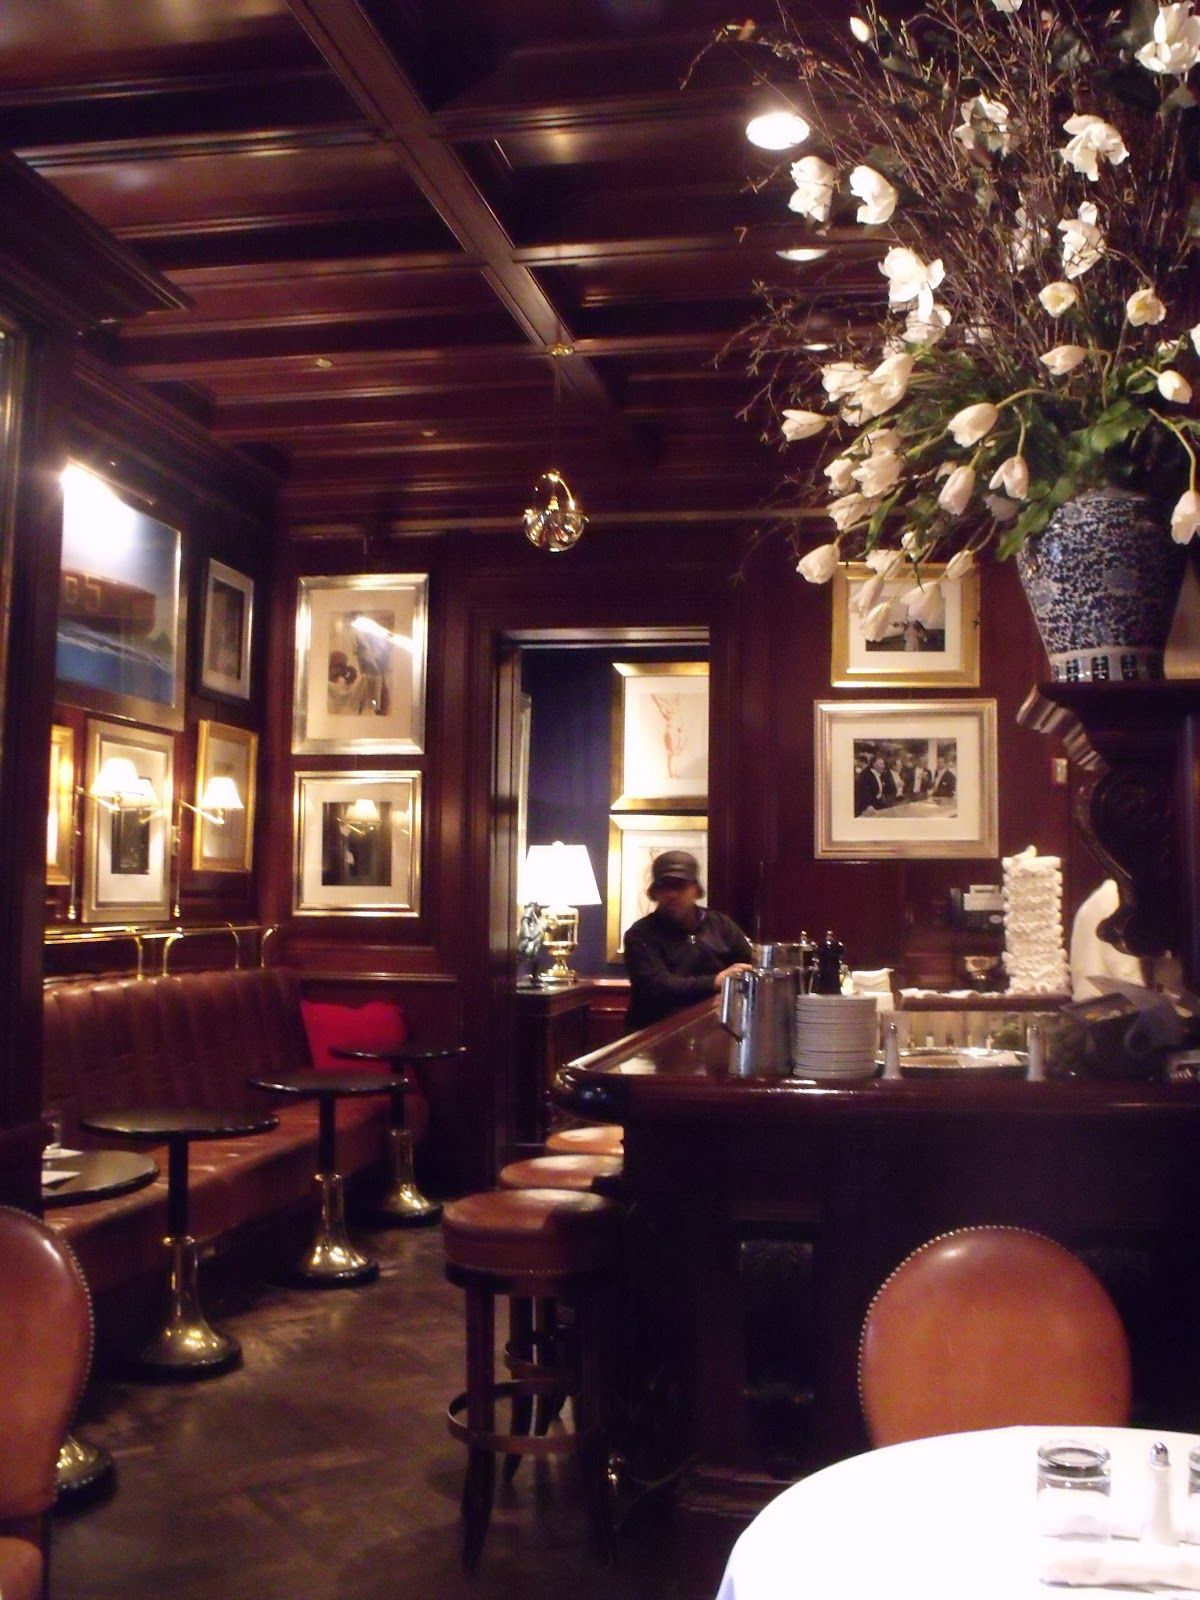 Interior of the bar lounge at ralph lauren restaurant